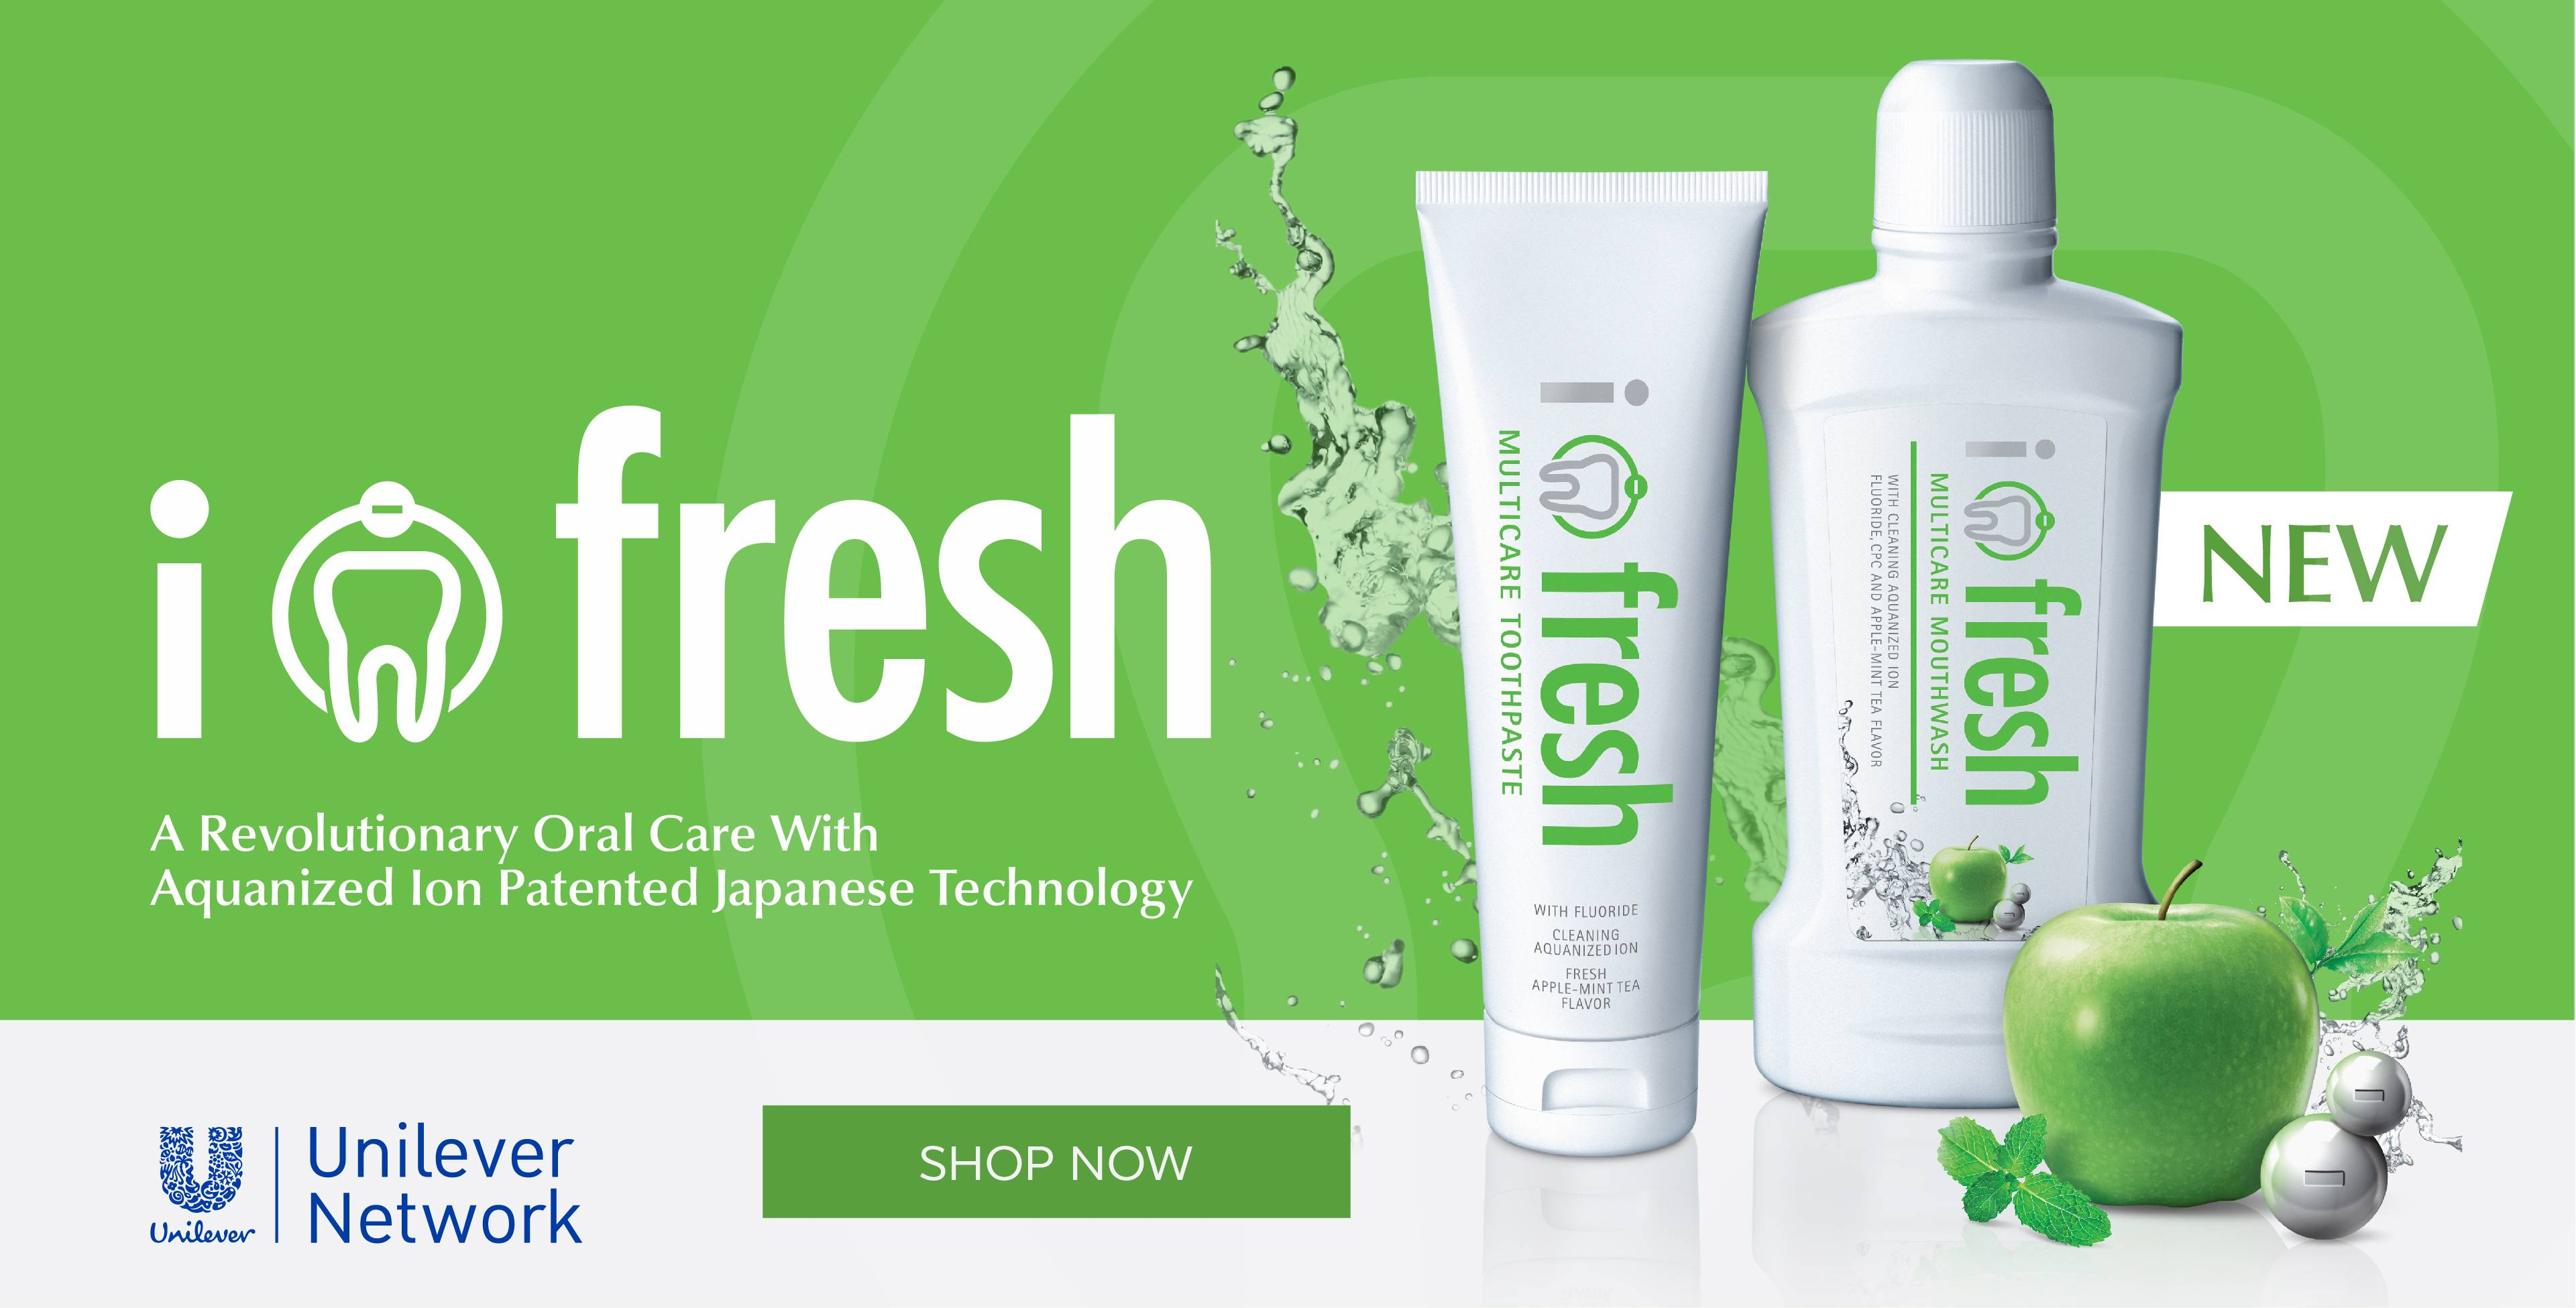 Newly Launch i-Fresh Mouth Wash